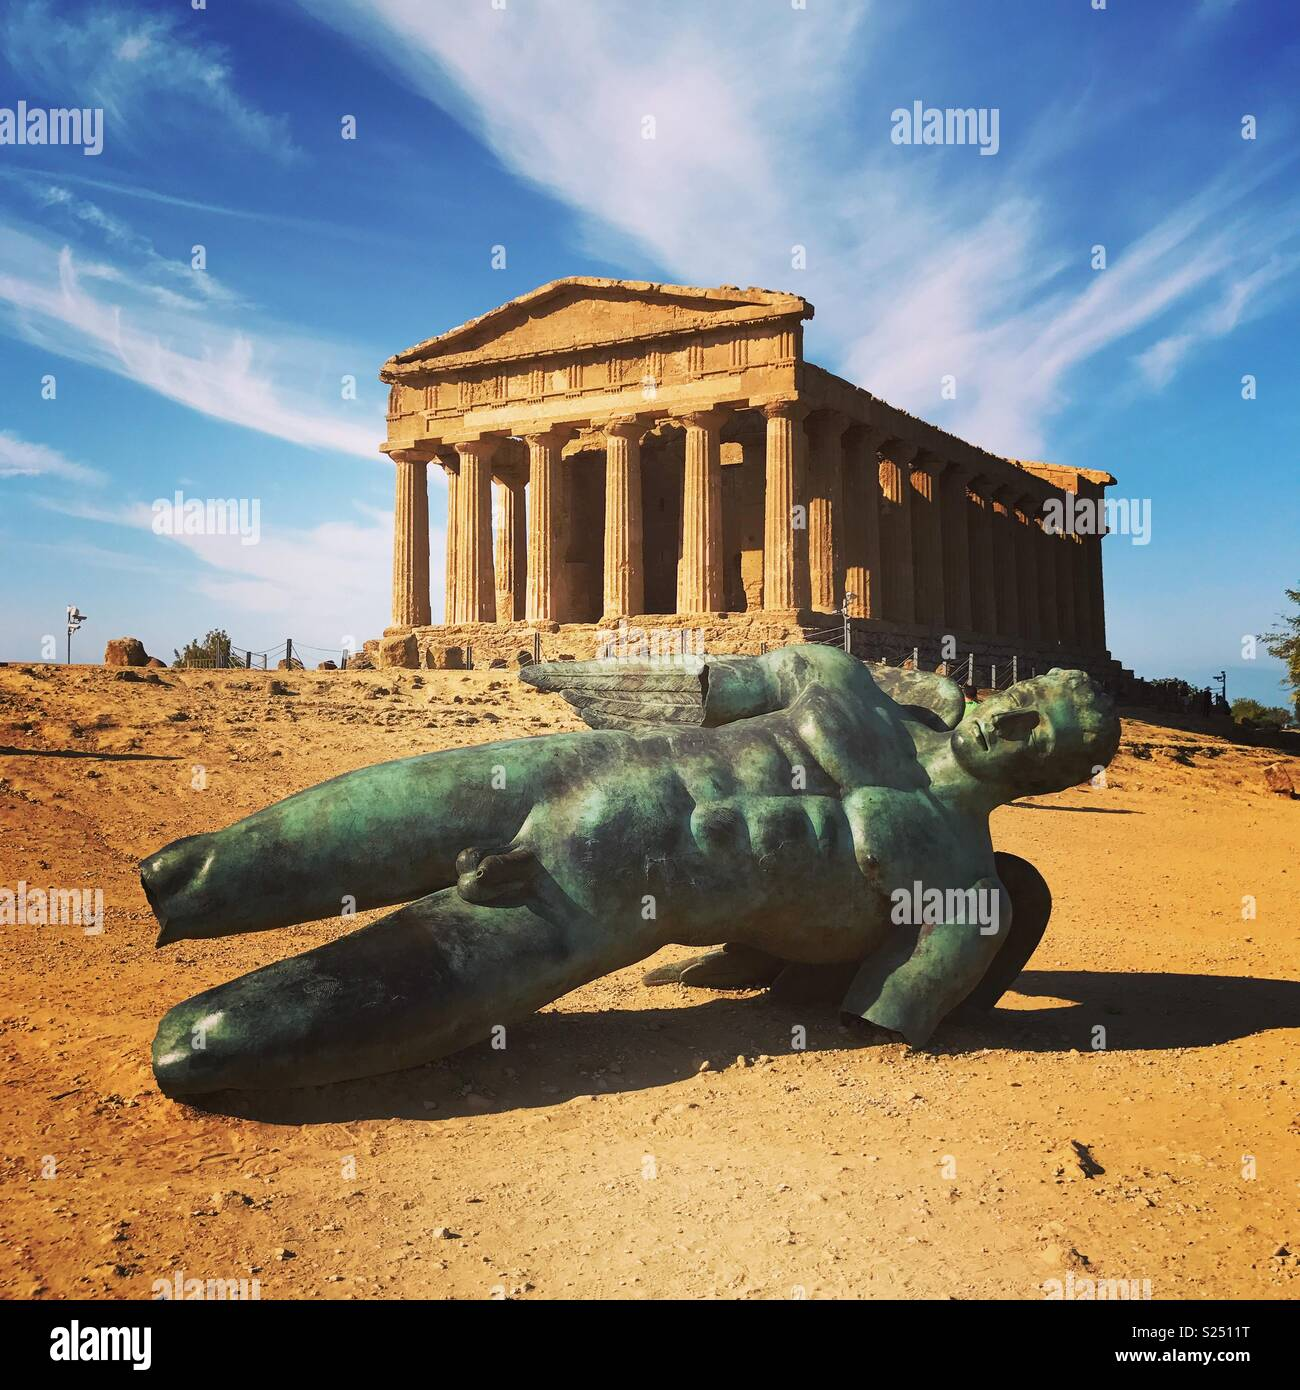 Valley of Temples, Temple of Concordia, Sicily - Stock Image